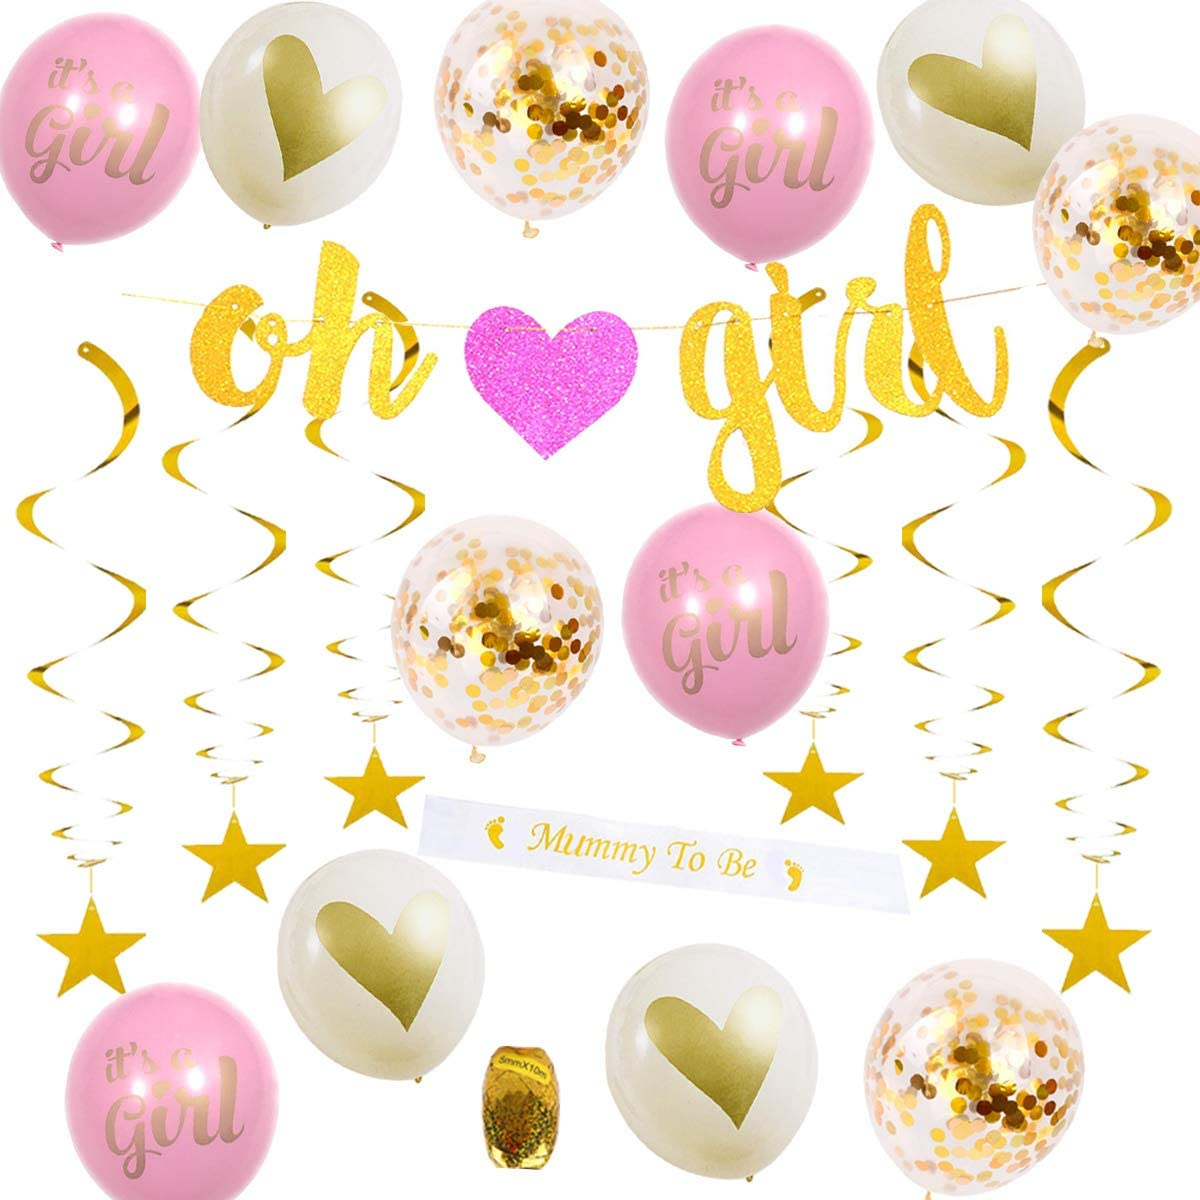 Baby Shower Decorations for Girl-Pink and Gold Baby Reveal Party Supplies-Oh Girl Banner-Gold Stars Swirls-Gold Confetti Balloons-Mommy To Be Body Sash